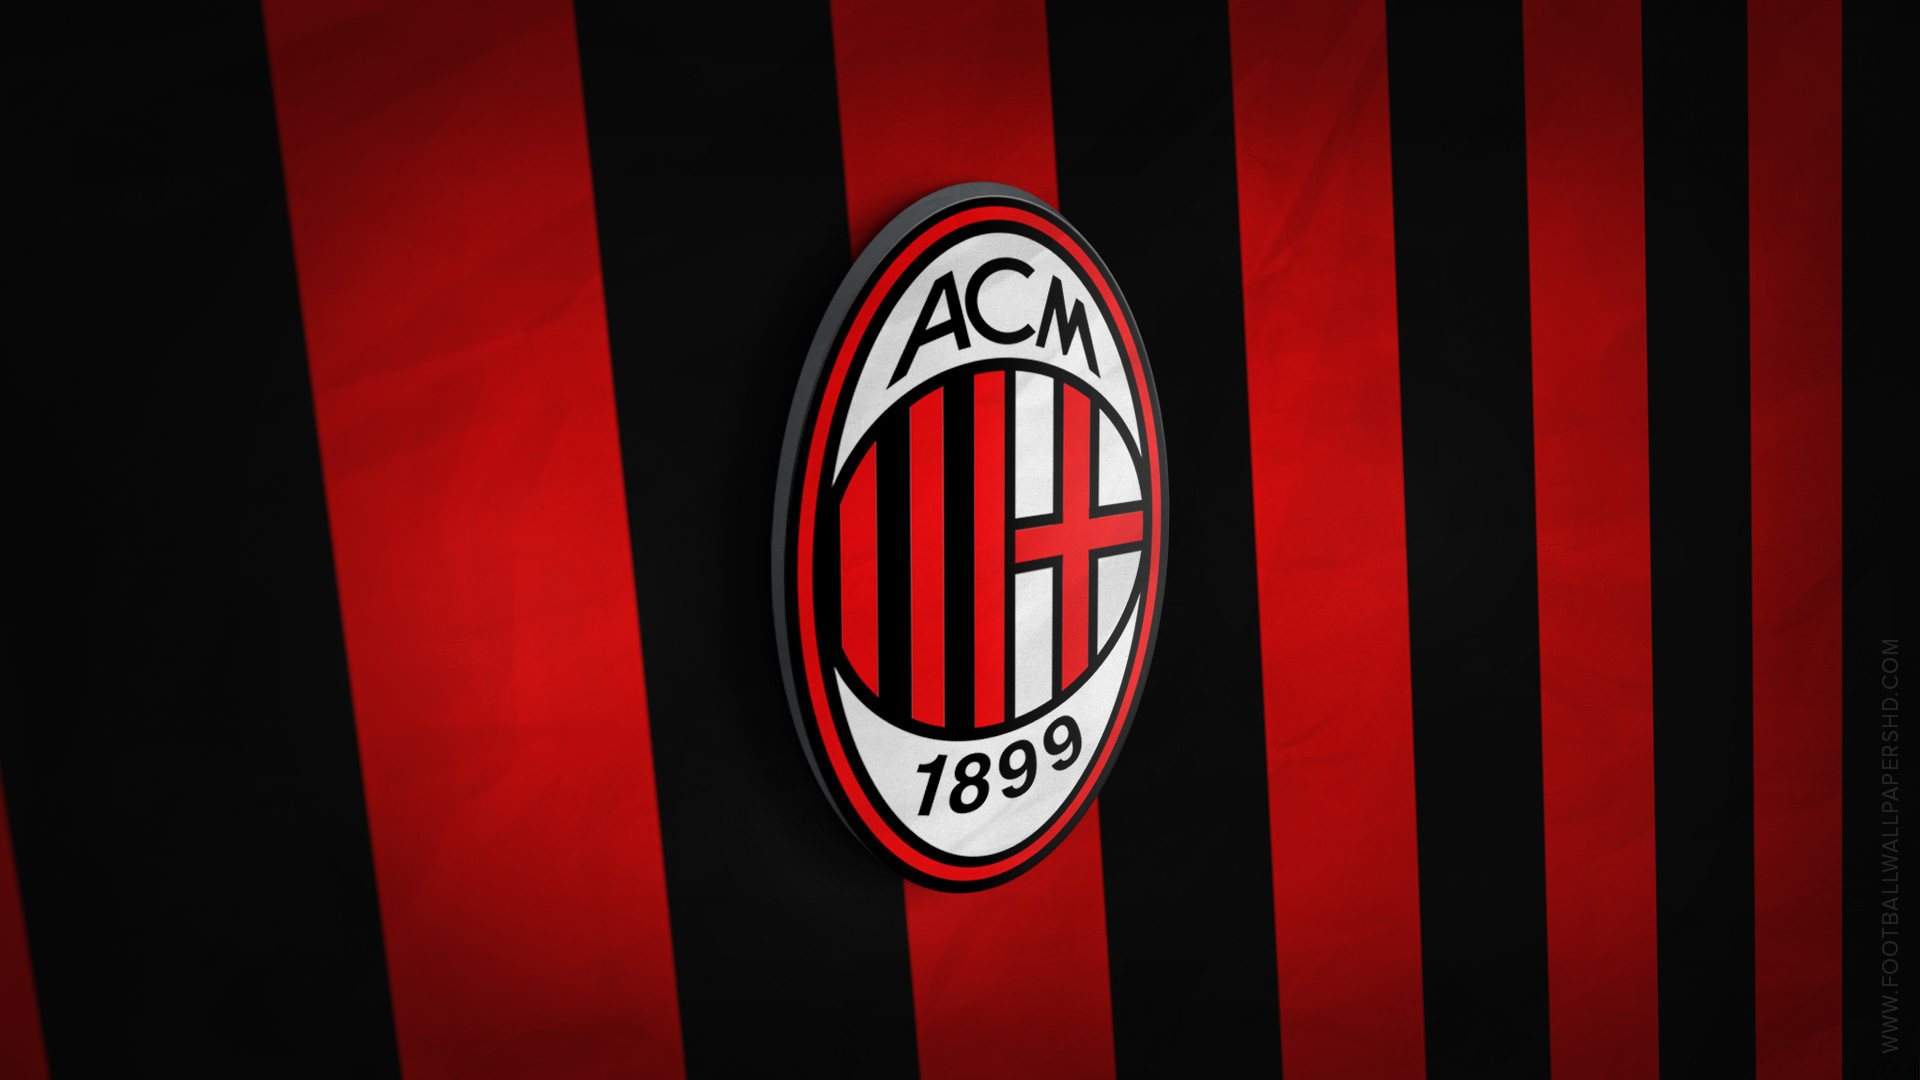 Hd wallpaper ac milan - 1920x1080 Ac Milan 3d Logo Wallpaper